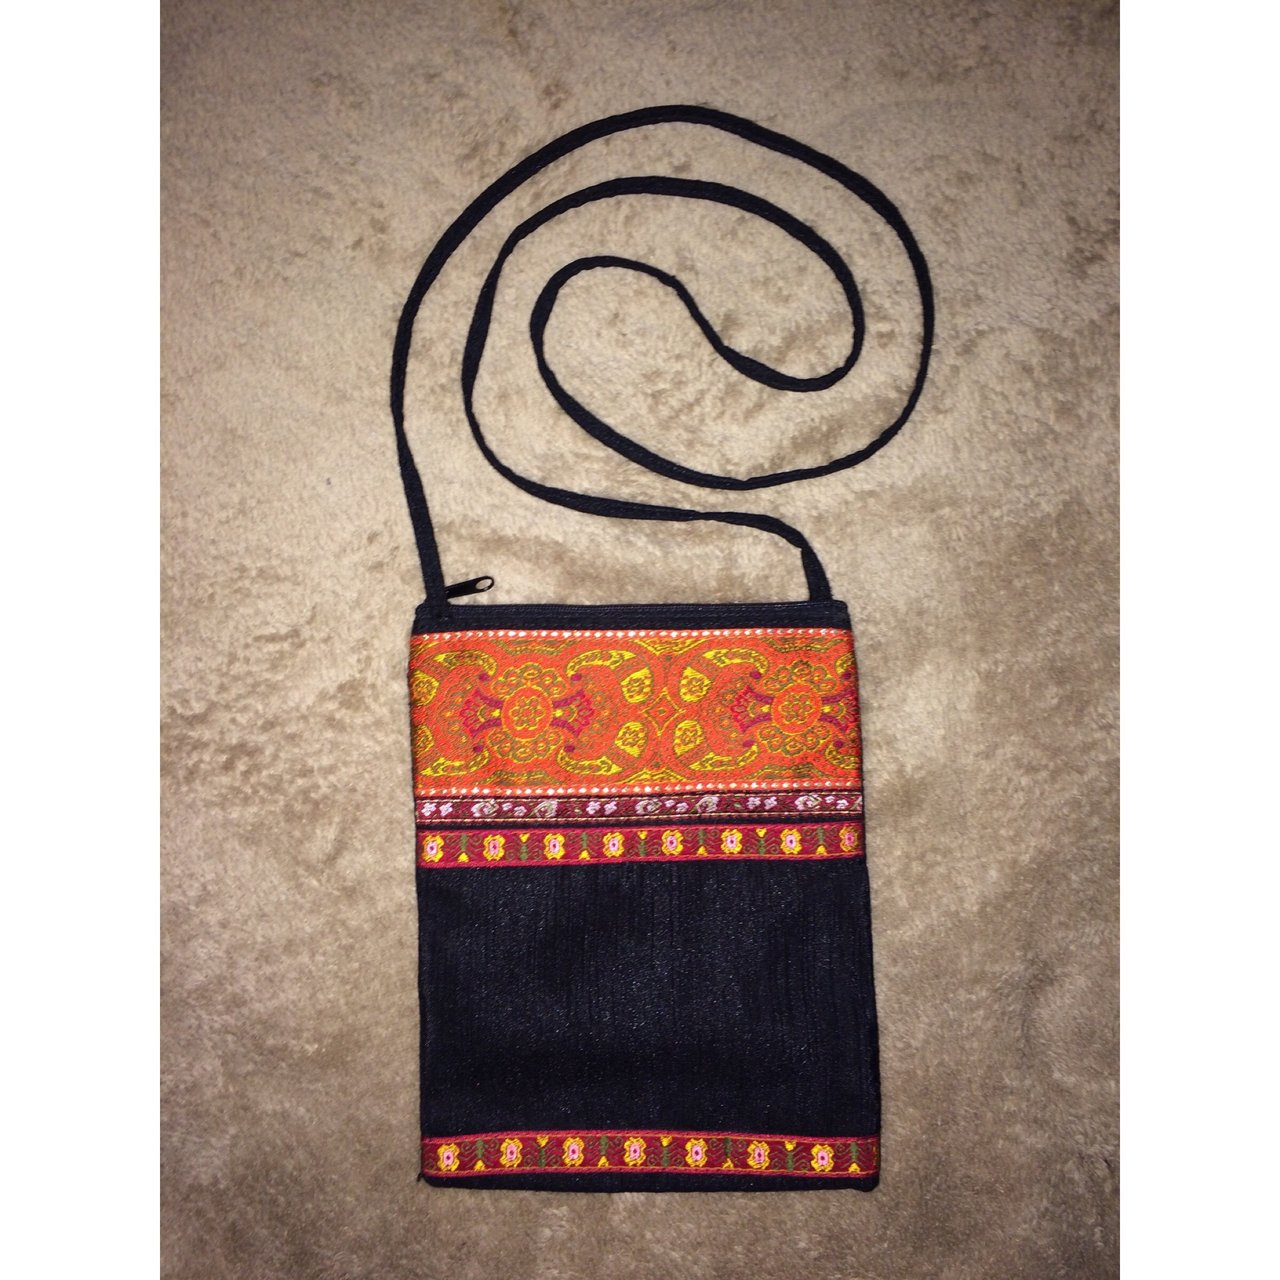 17994770ef Beautiful handmade vintage Indian crossbody bag purse. Great - Depop